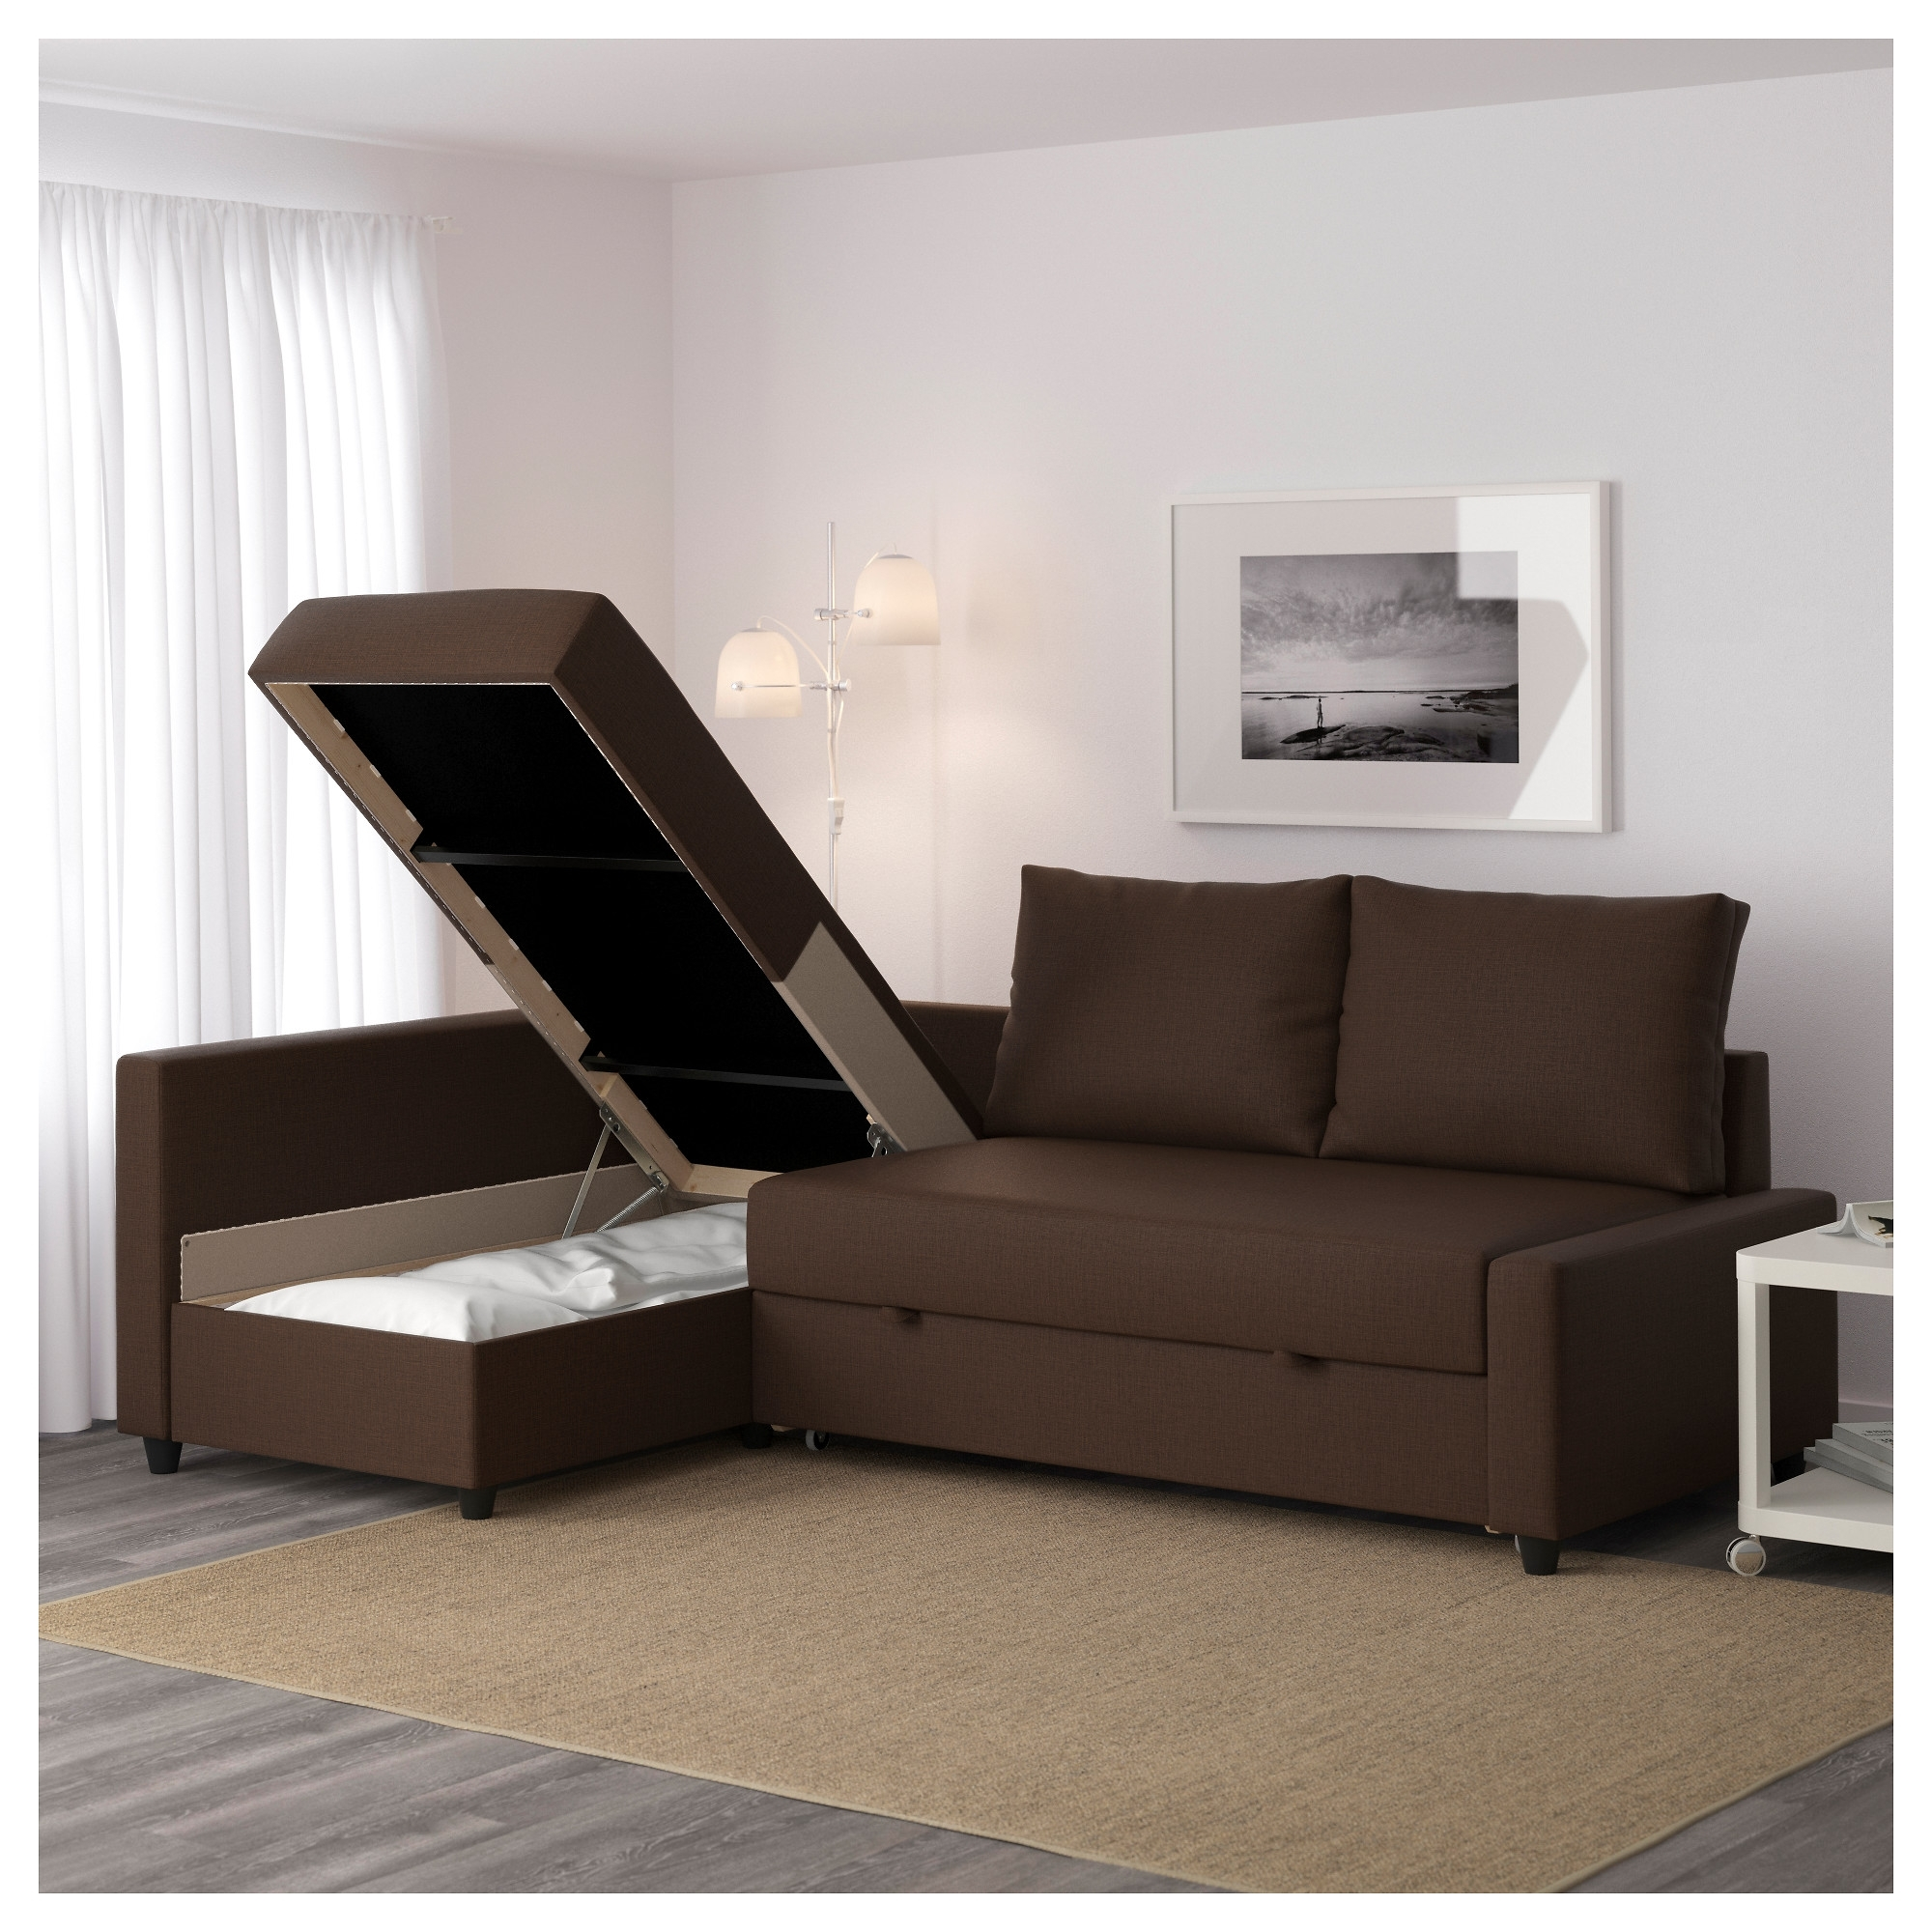 Friheten Corner Sofa-Bed With Storage - Skiftebo Dark Gray - Ikea regarding Ikea Corner Sofas With Storage (Image 2 of 10)